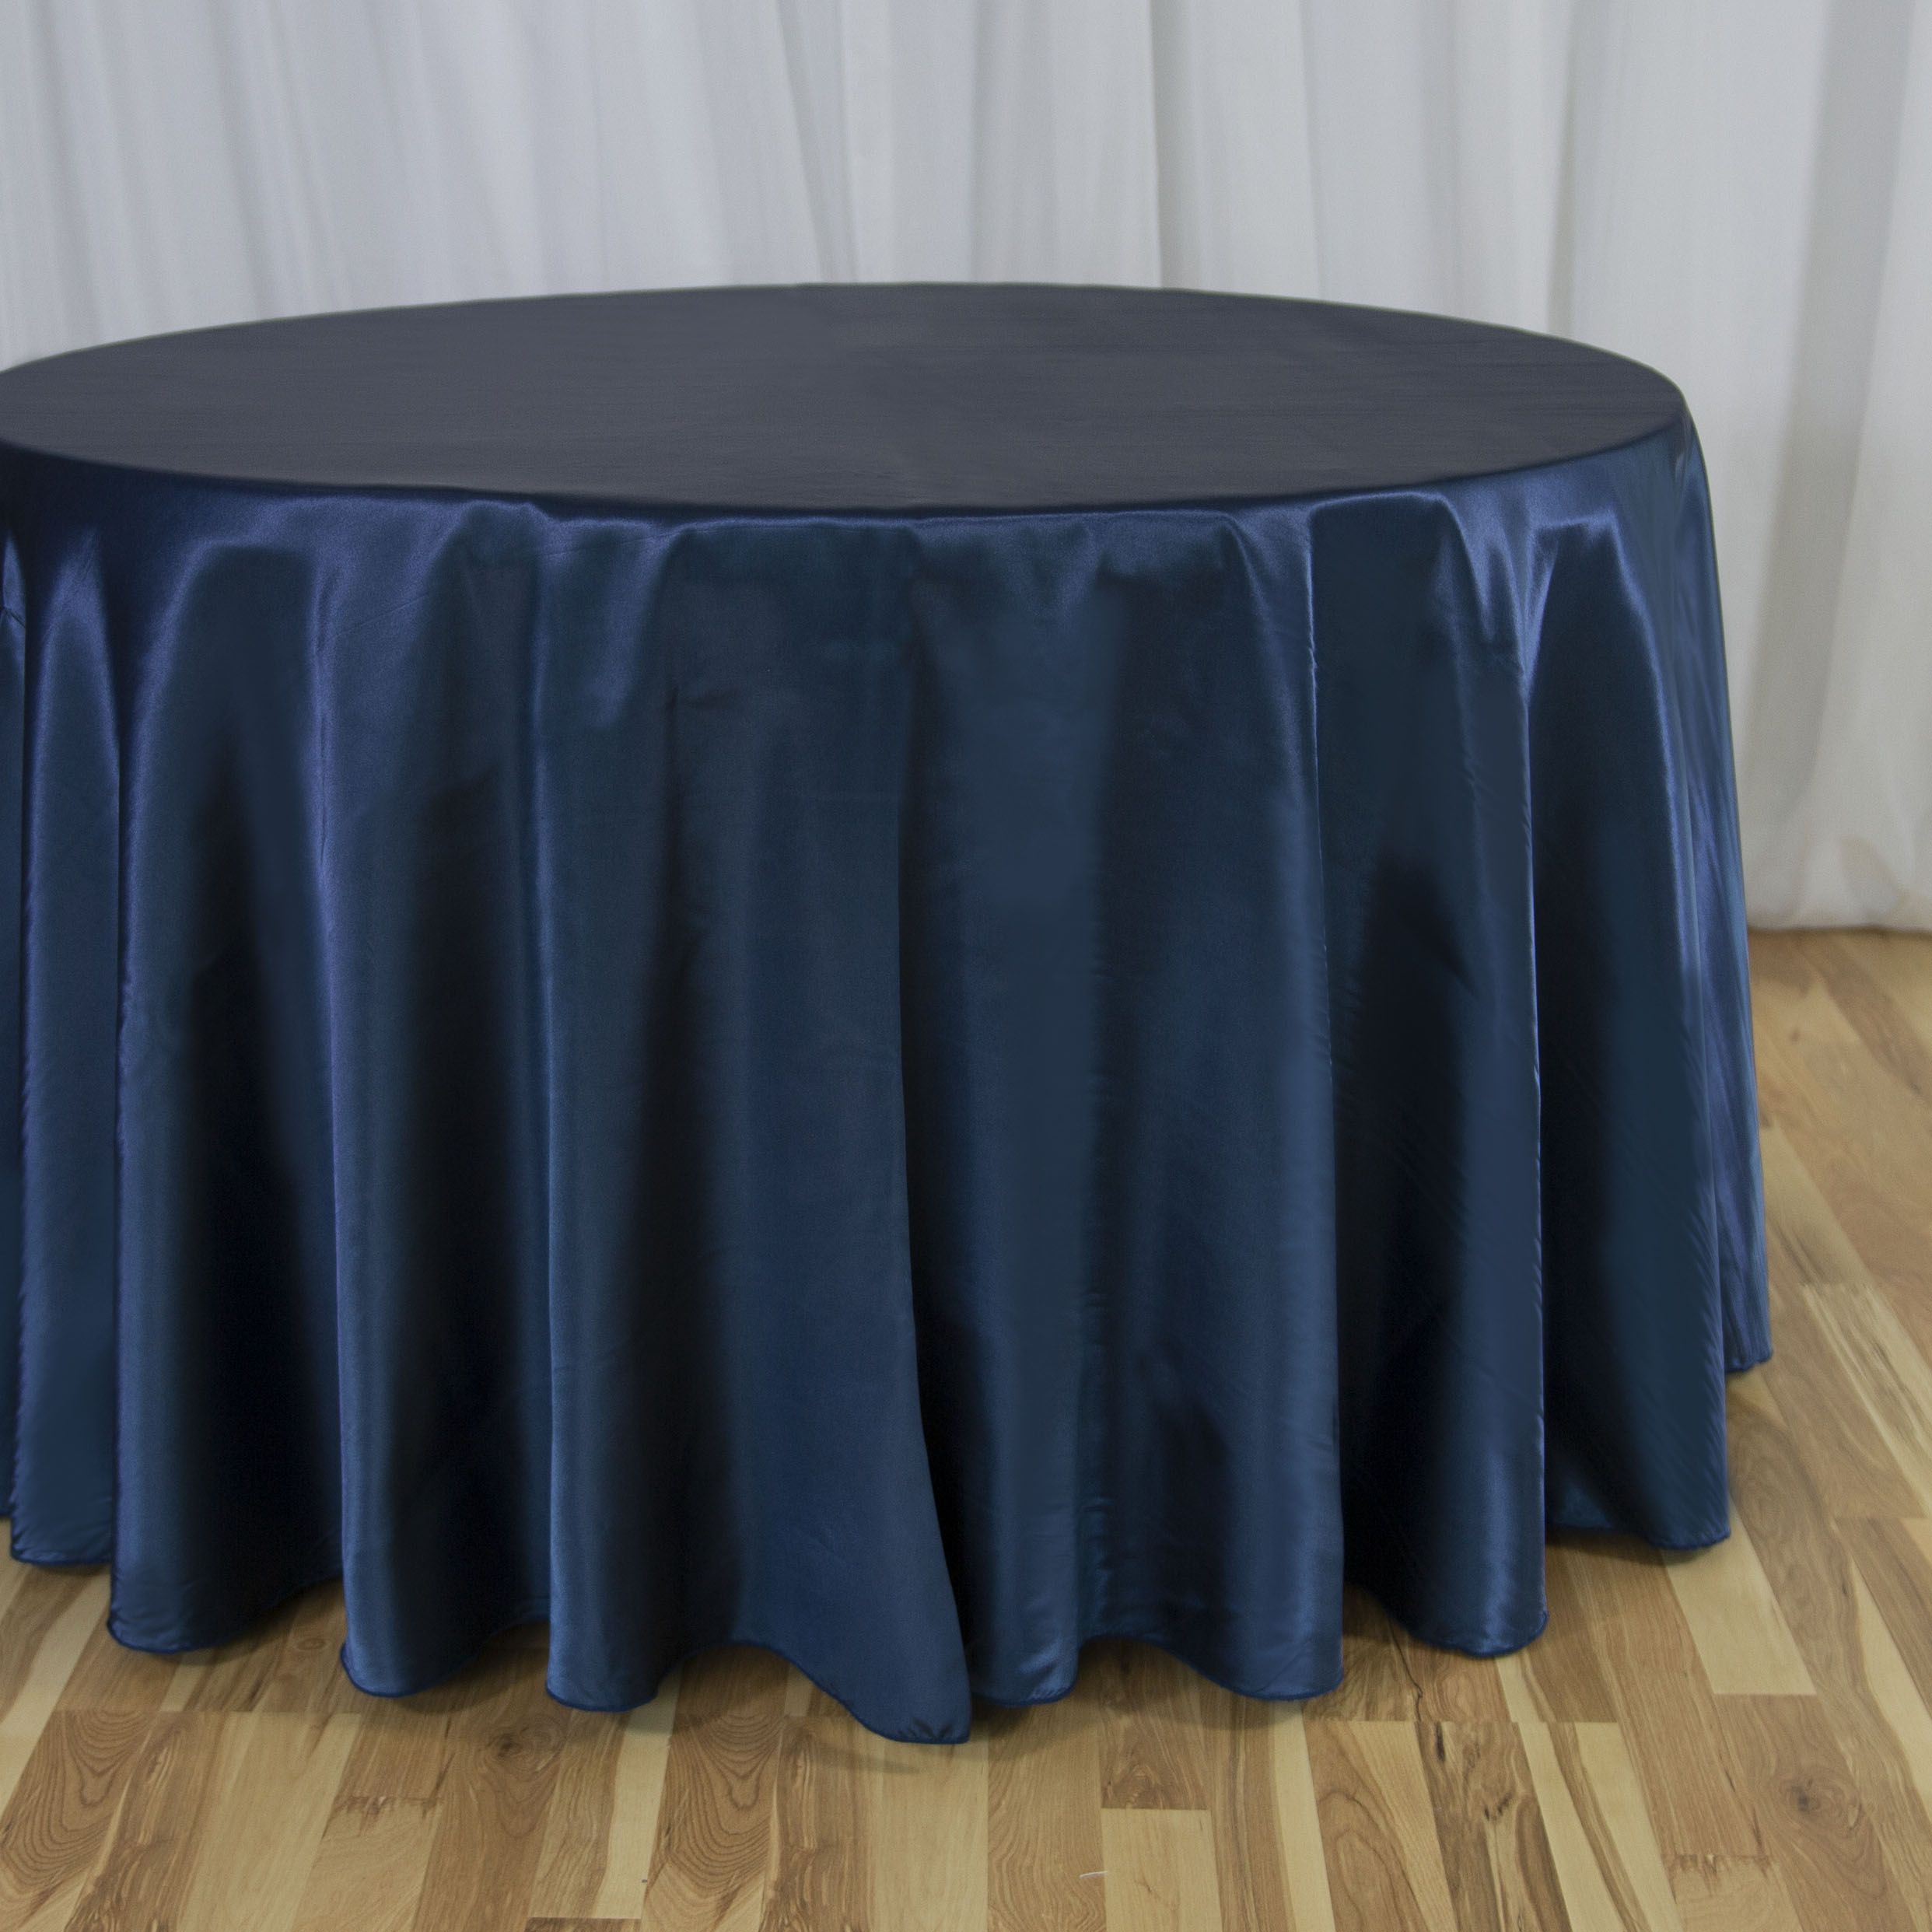 118 In Round Satin Tablecloth Navy Blue Table Cloth Navy Table